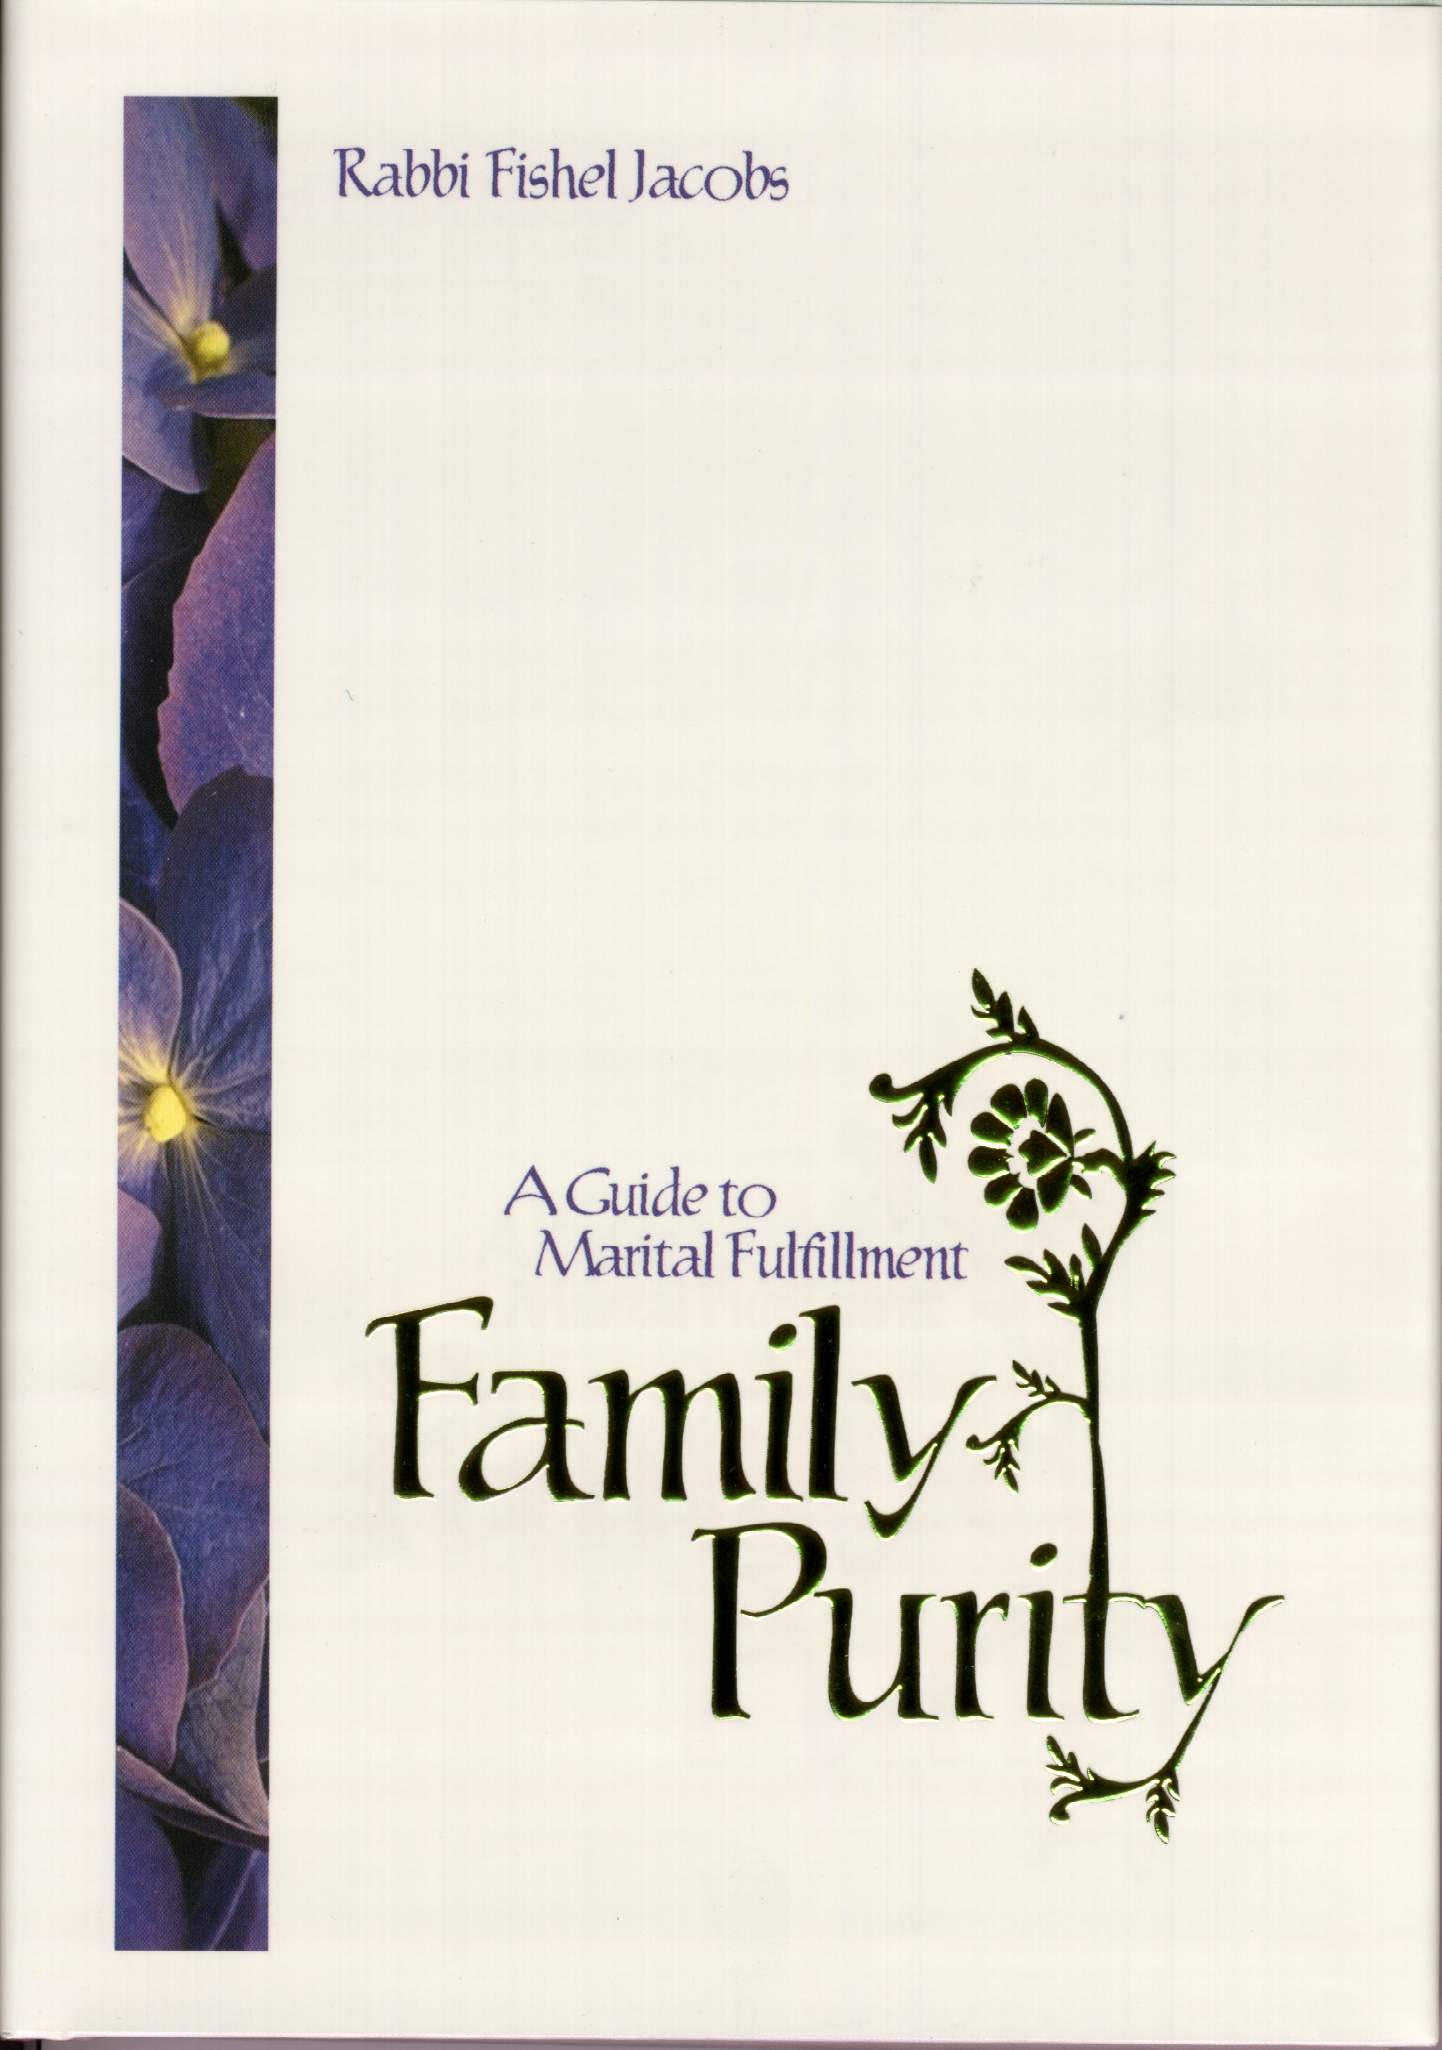 Family Purity: A Guide to Marital Fulfillment, by Rabbi F Jacobs